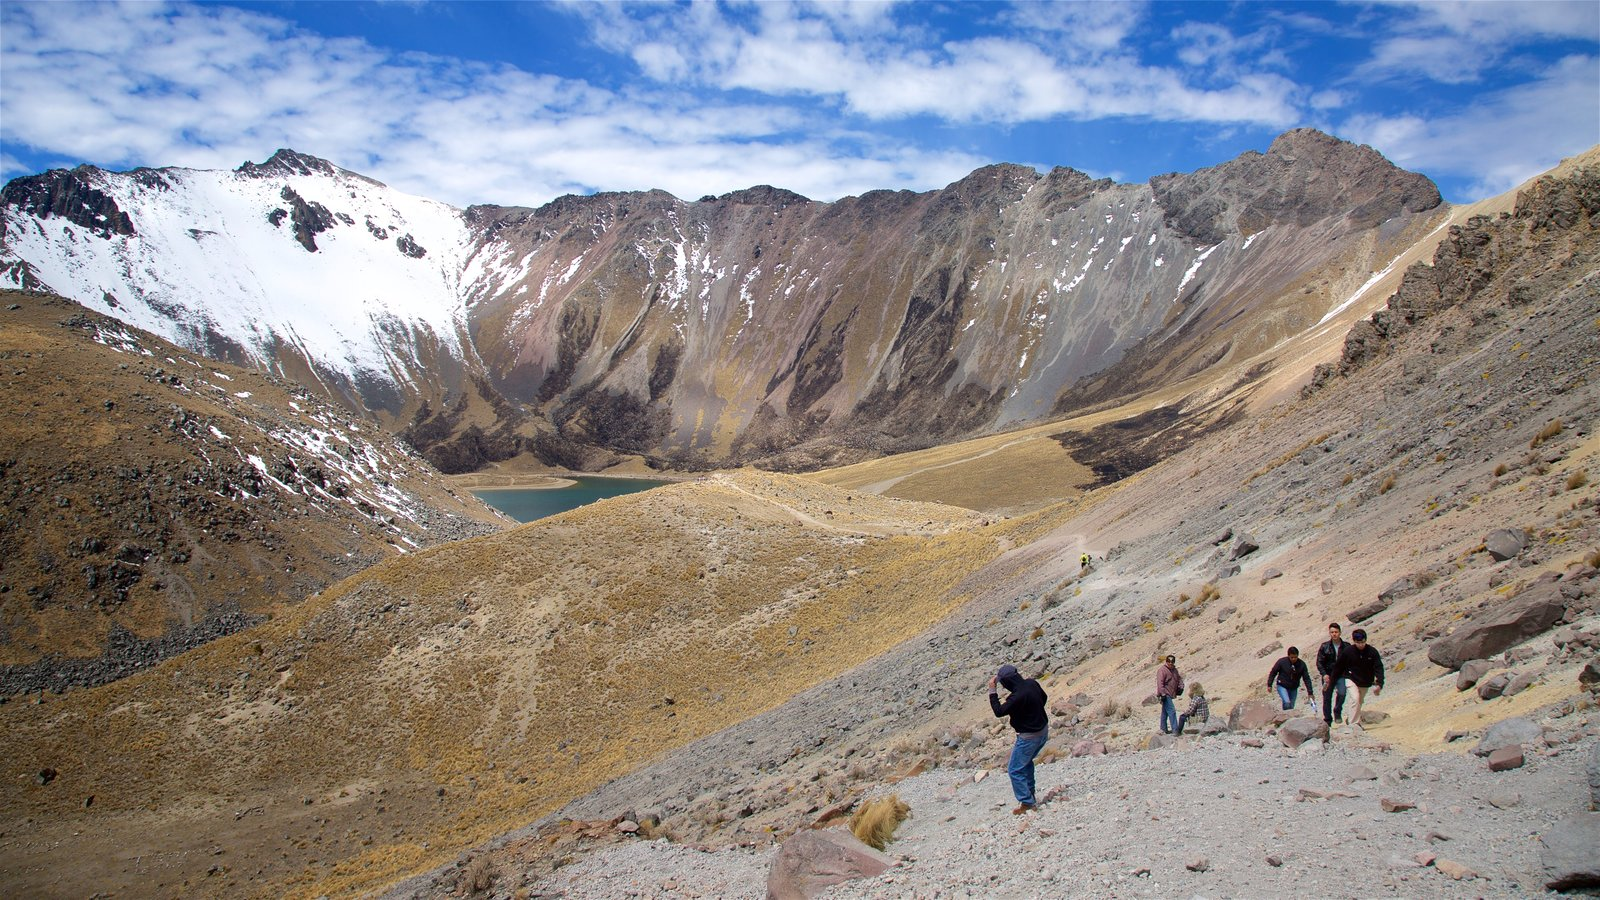 Nevado de Toluca National Park showing snow, mountains and tranquil scenes